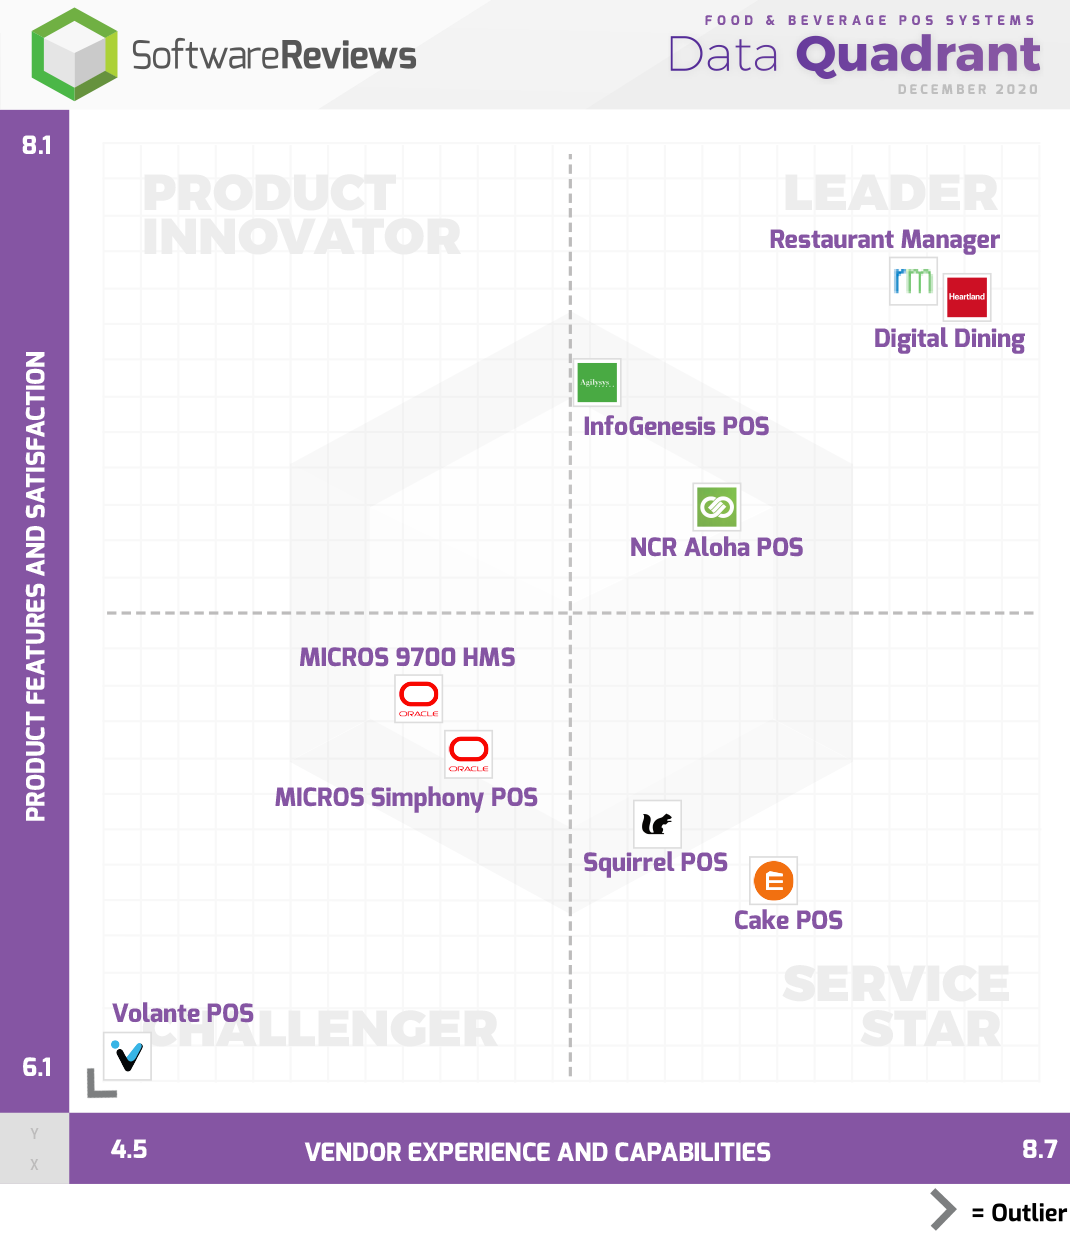 Food & Beverage POS Systems Data Quadrant